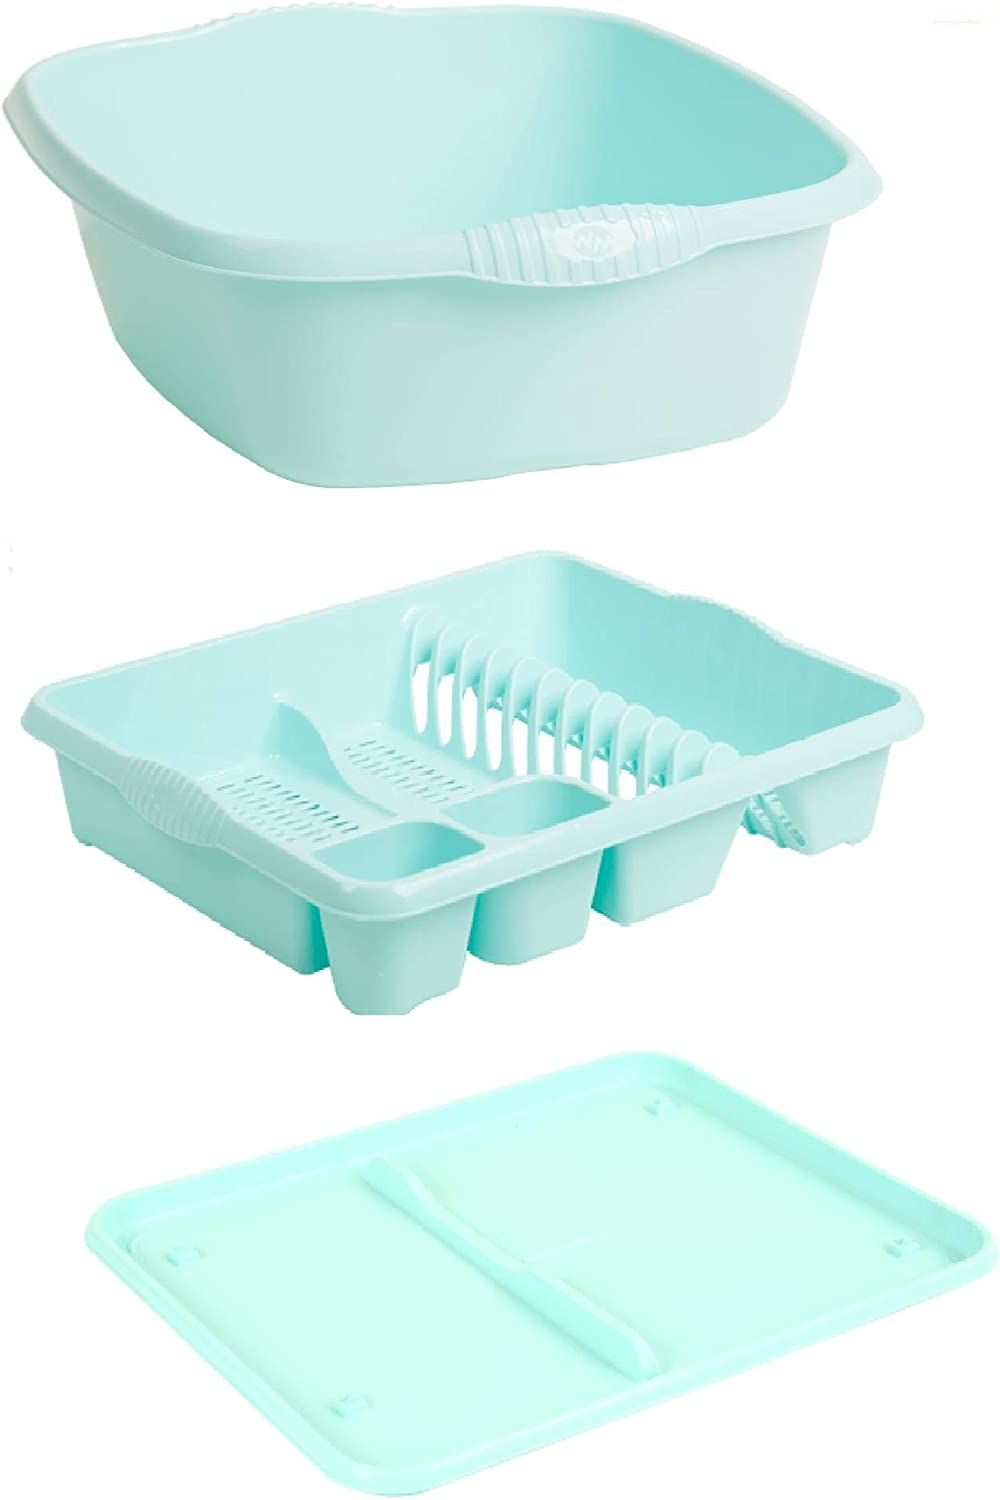 Plastic Large Kitchen Sink Set of 12 Rectangular Washing Up Bowl, Drainer  and Tray (Duck Egg Blue, Large)